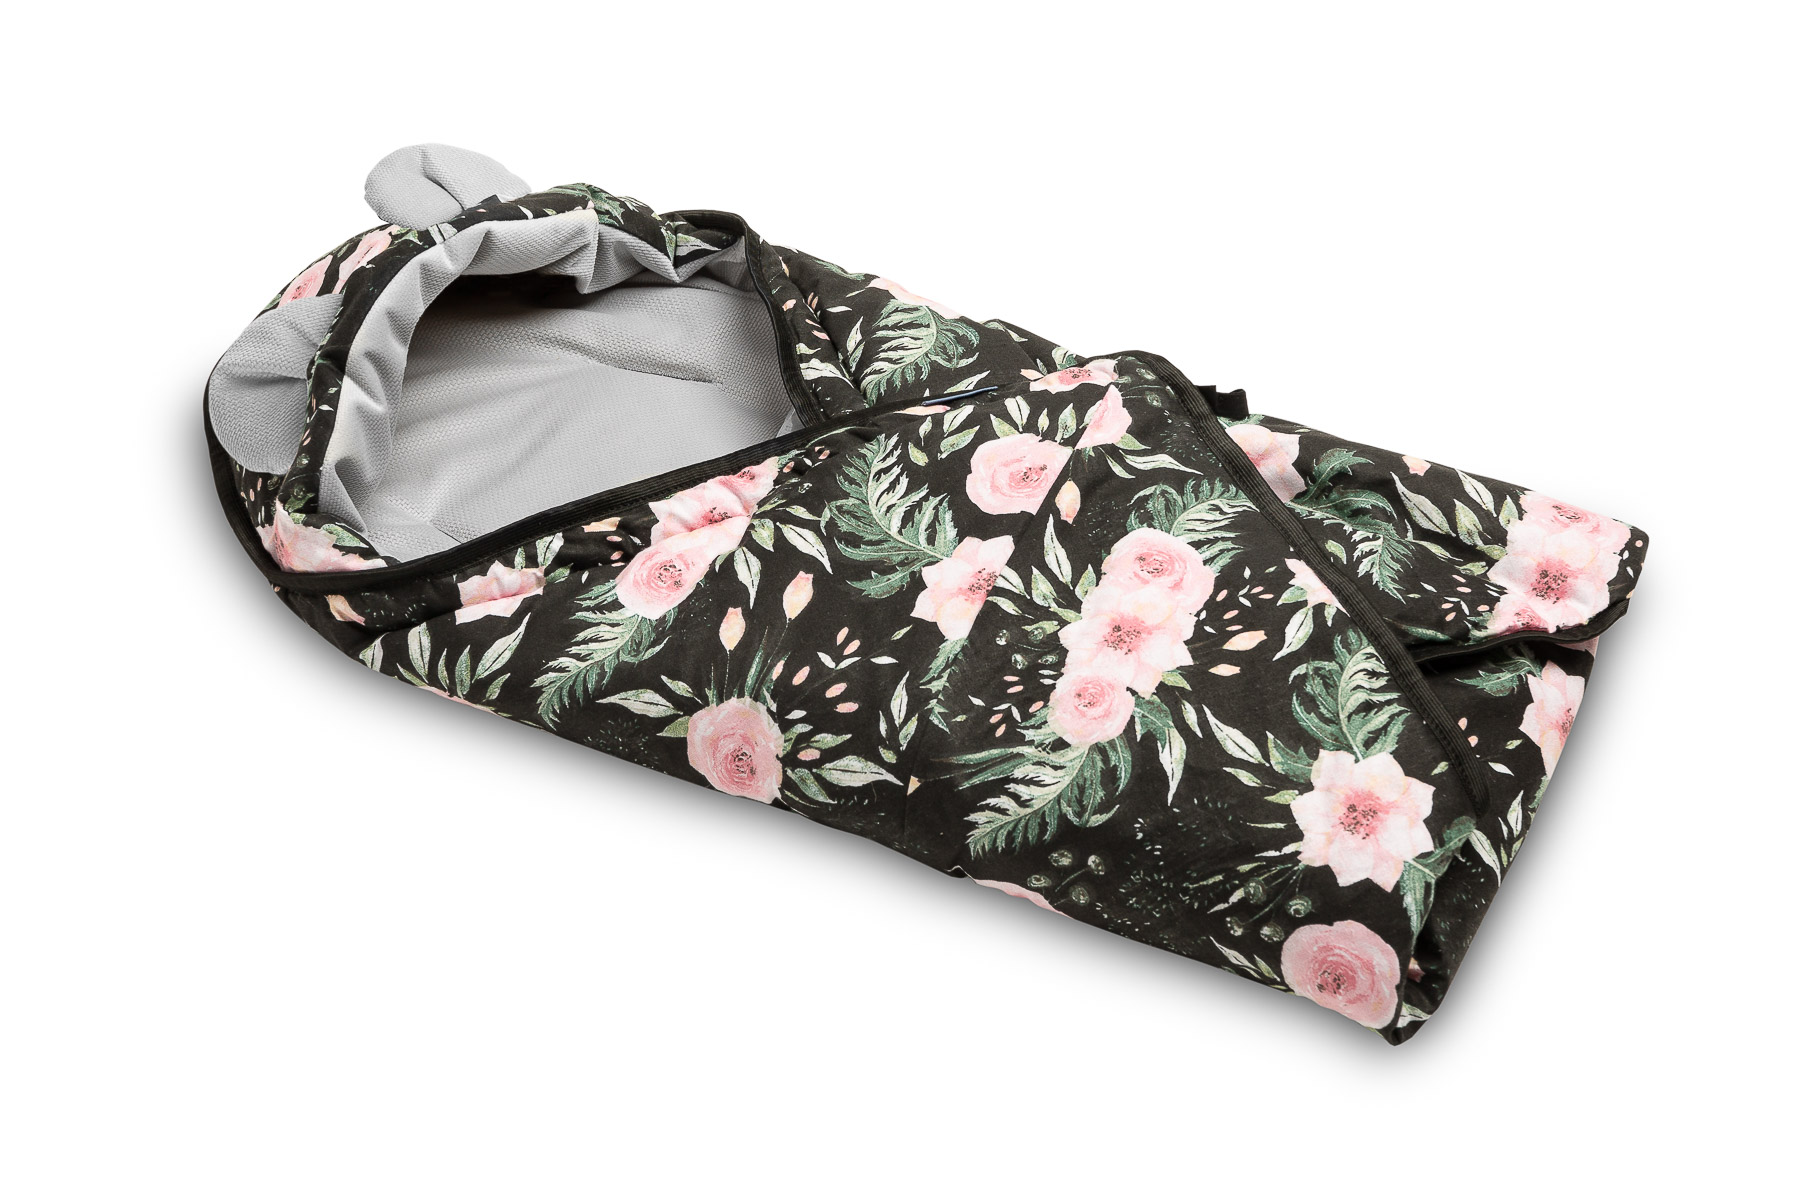 Velvet carry-cot swaddle blanket – flowers black